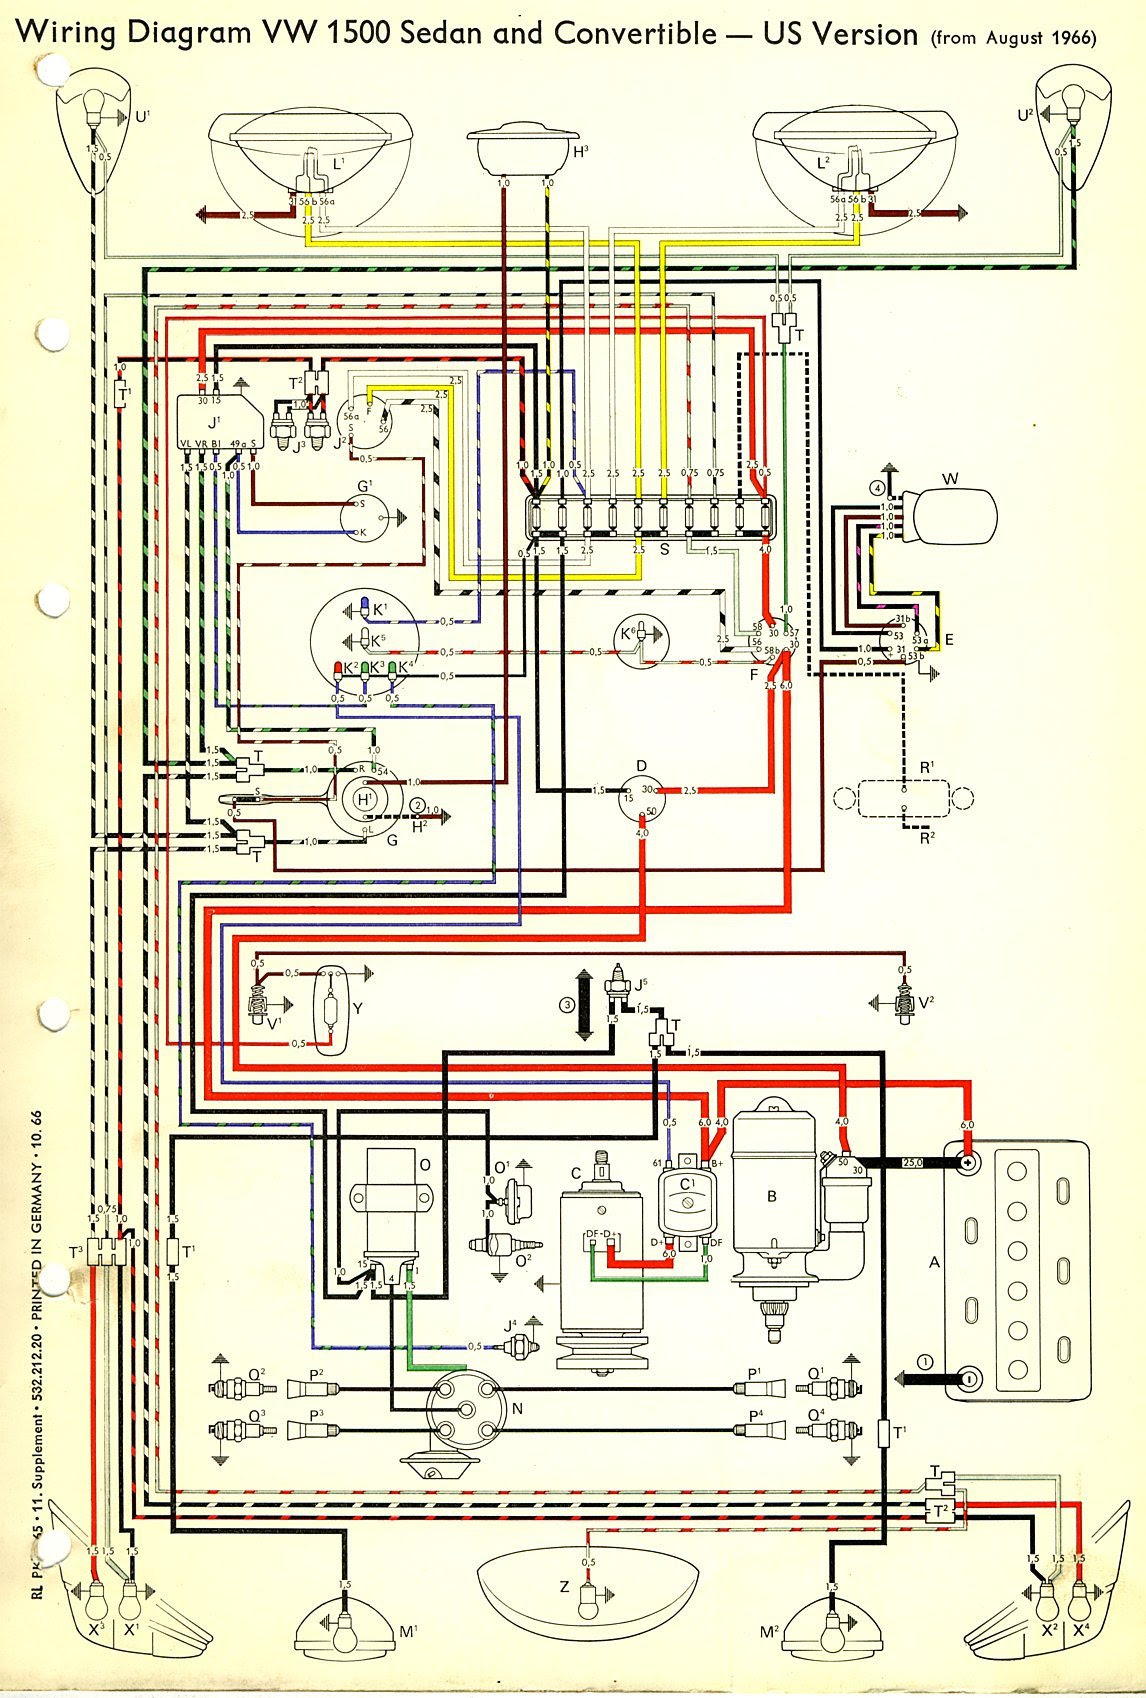 Vw Super Beetle Wiring Diagram Wiring Diagram Workstation Workstation Pasticceriagele It